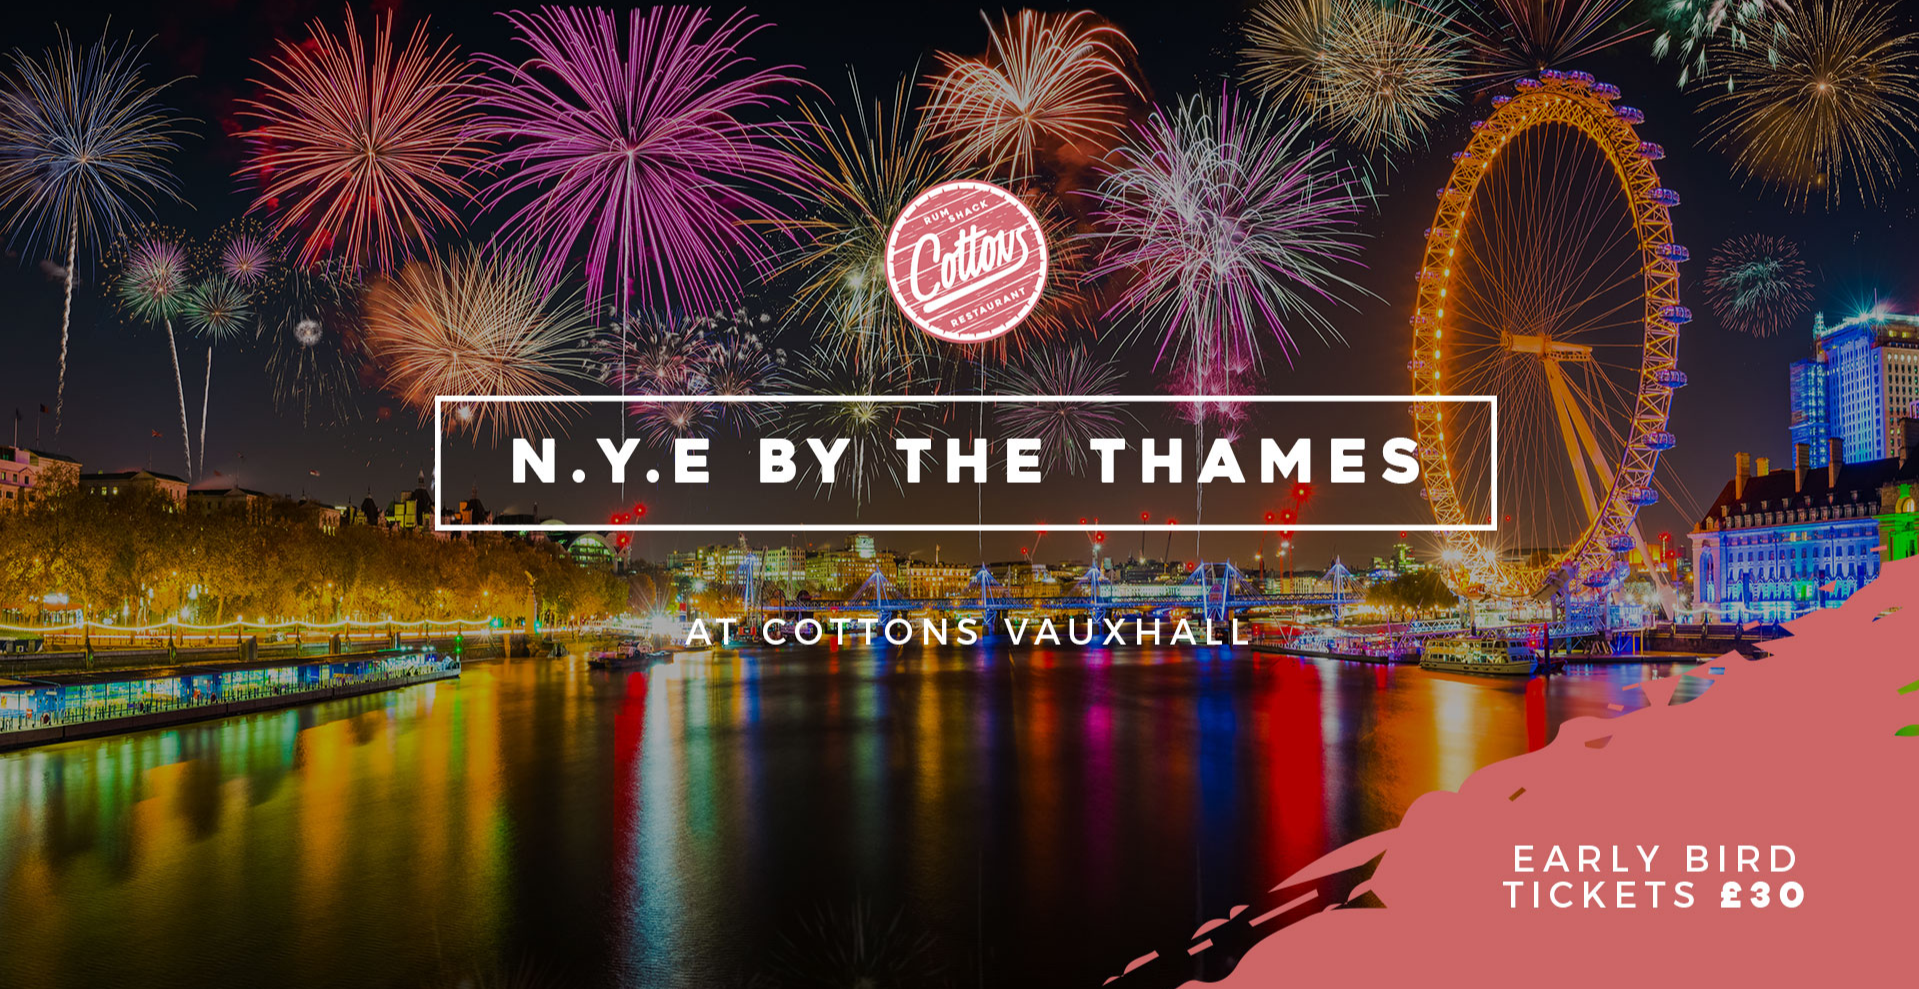 New Year's Eve by the Thames at Cottons Vauxhall